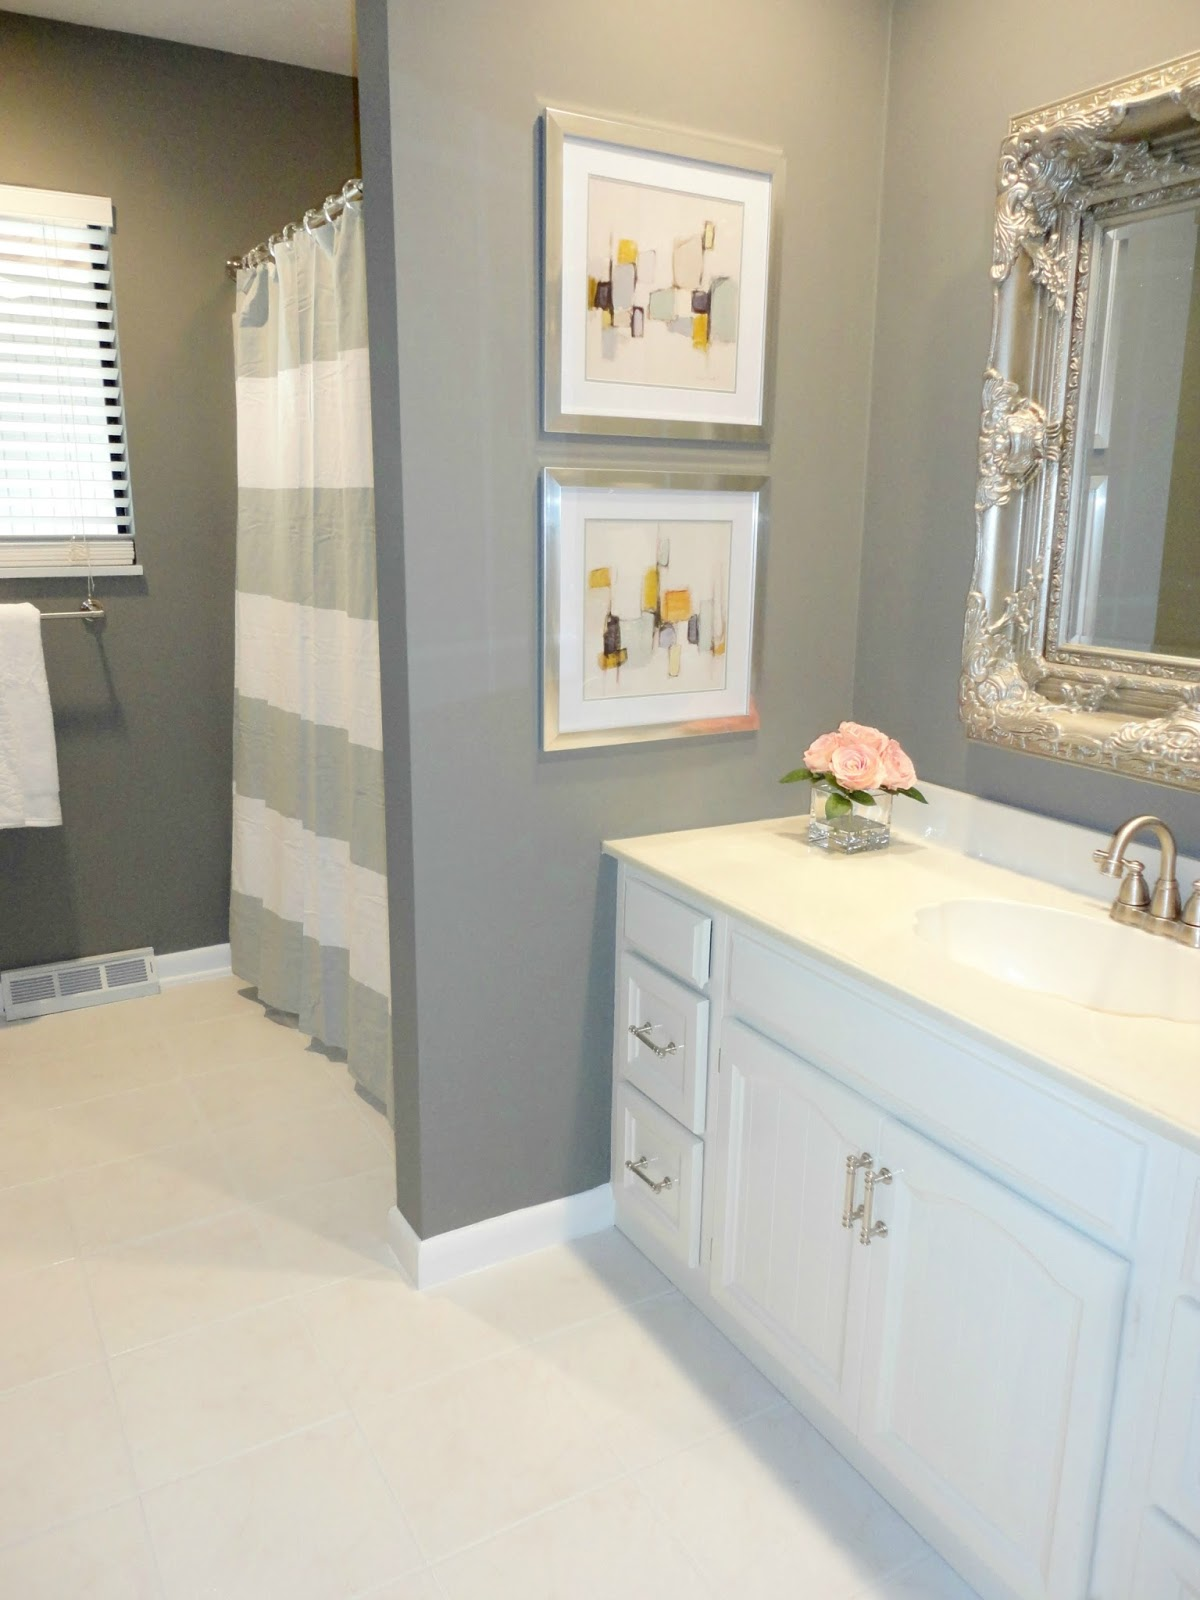 Best DIY Bathroom Remodel on a Budget